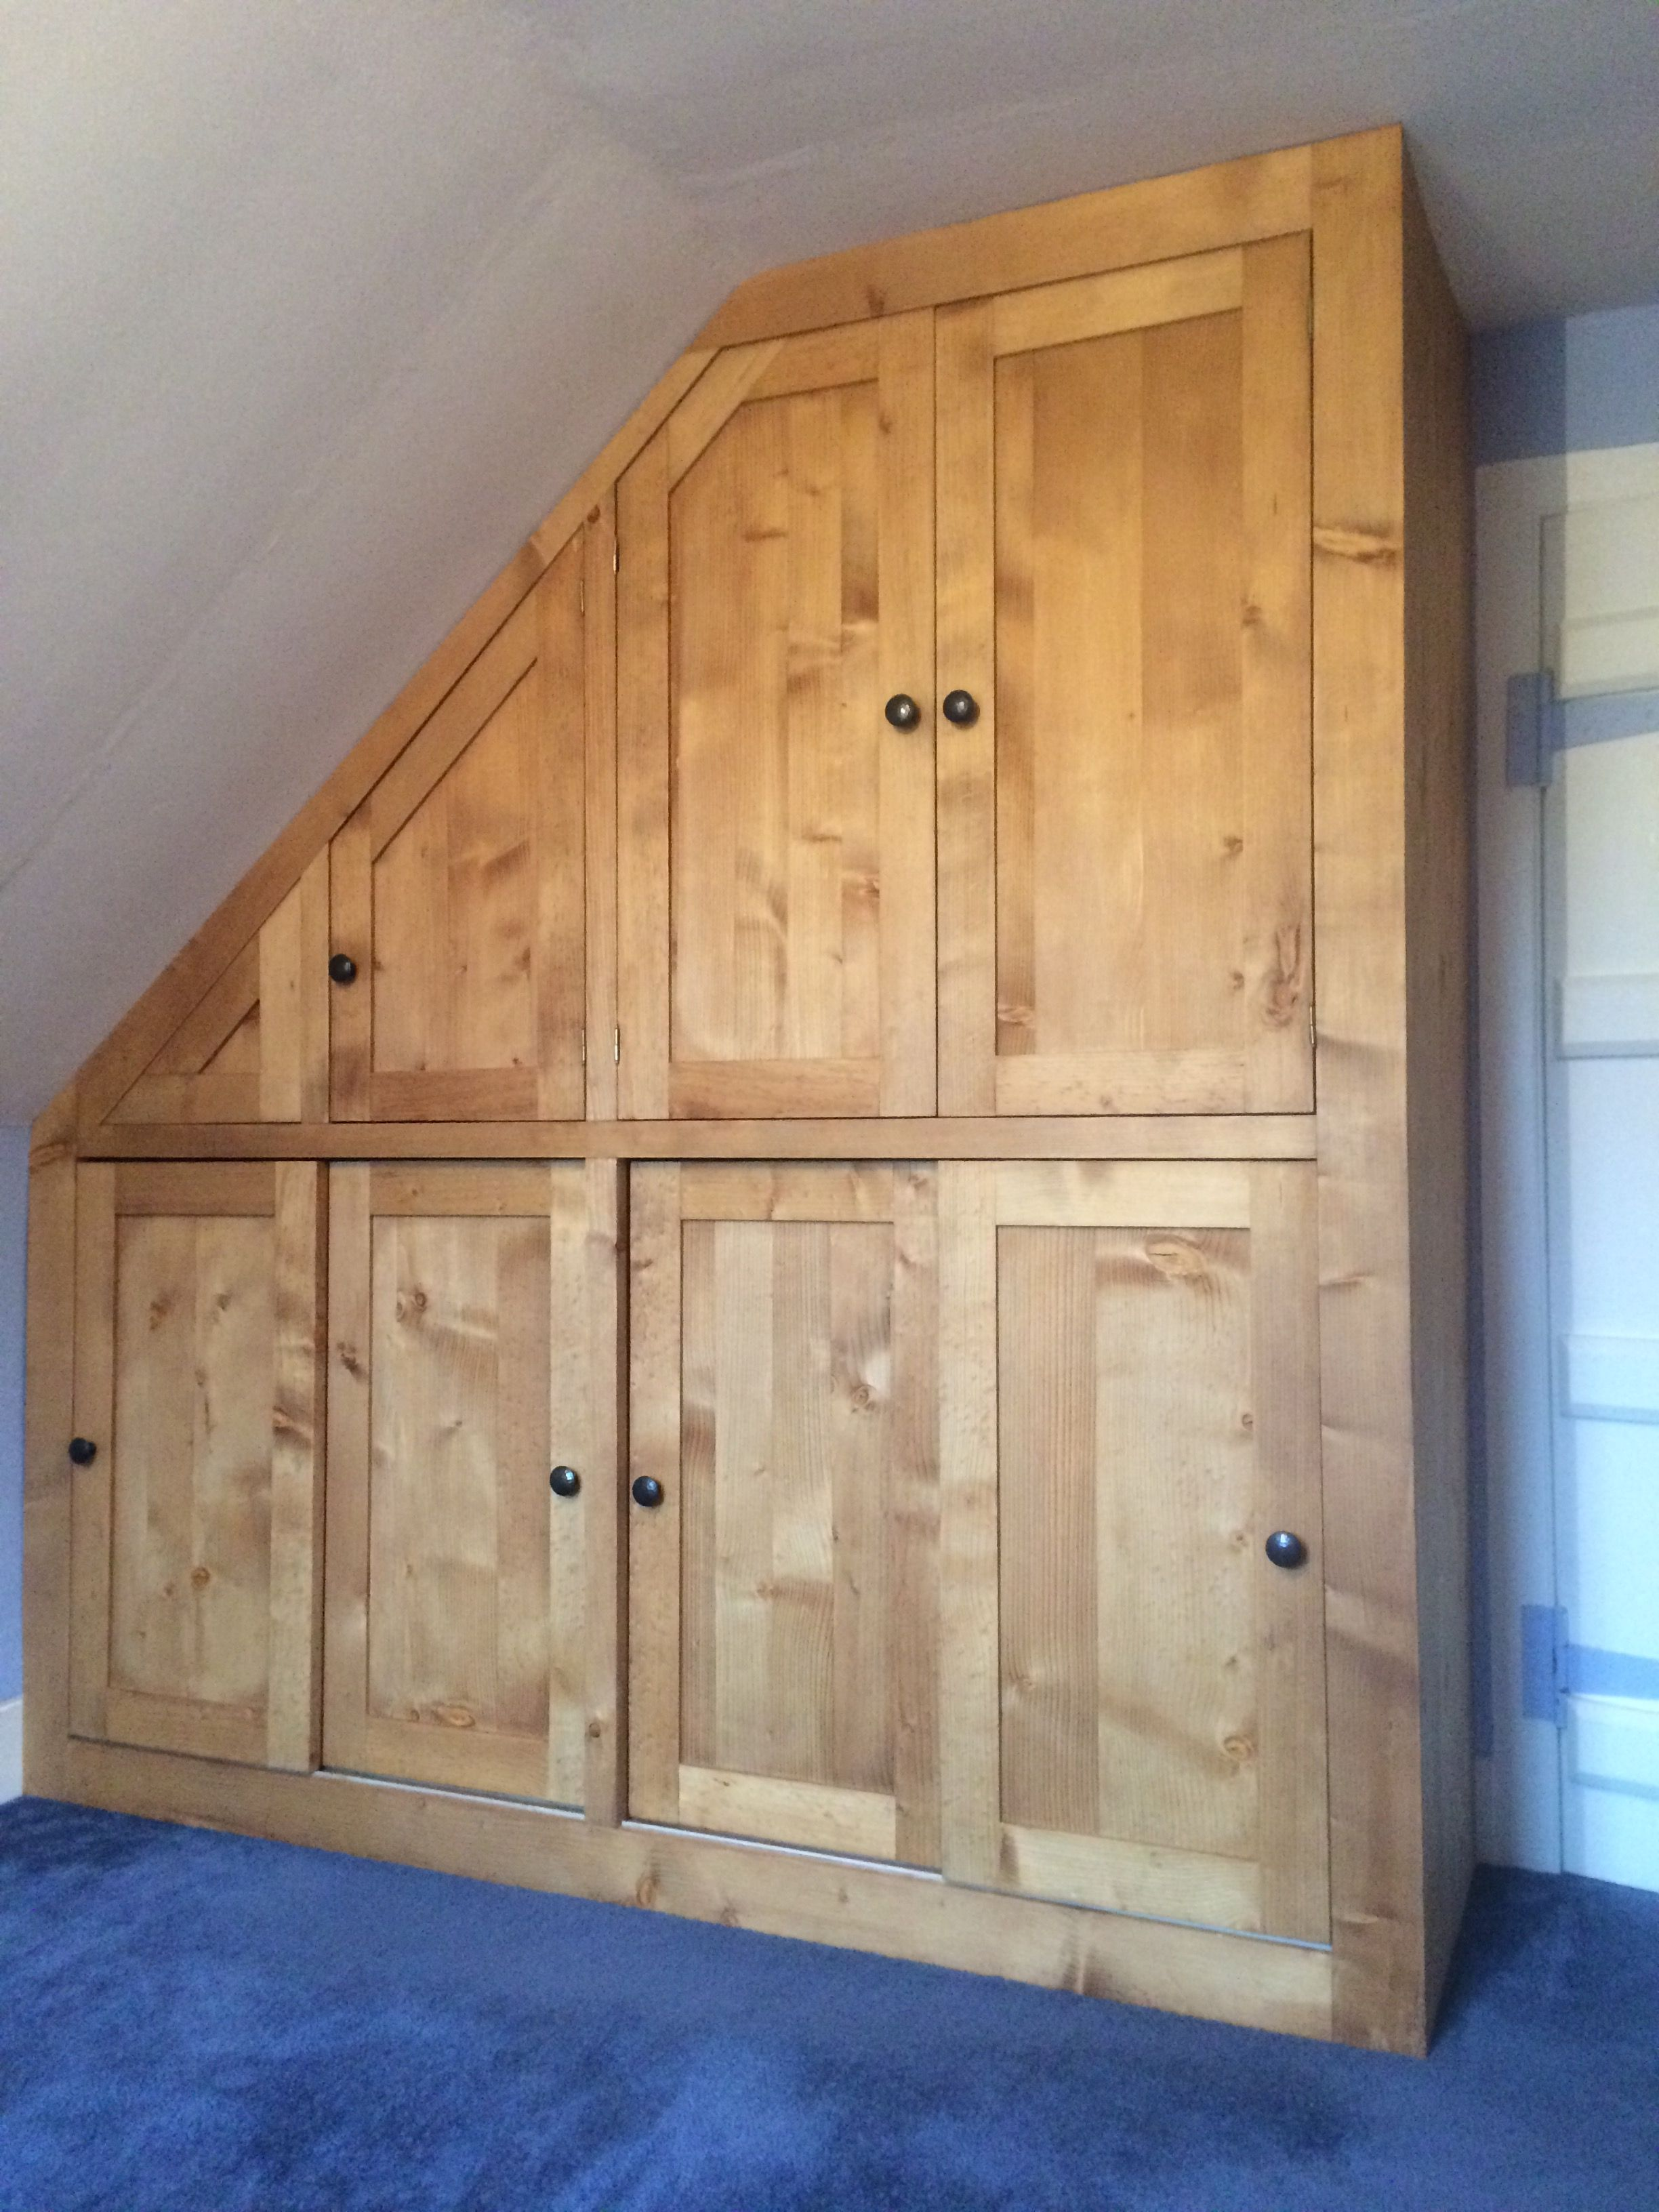 clever design wardrobes for bedroom. Maximise storage with clever design like this solid wood bespoke fitted  wardrobe in the eaves of